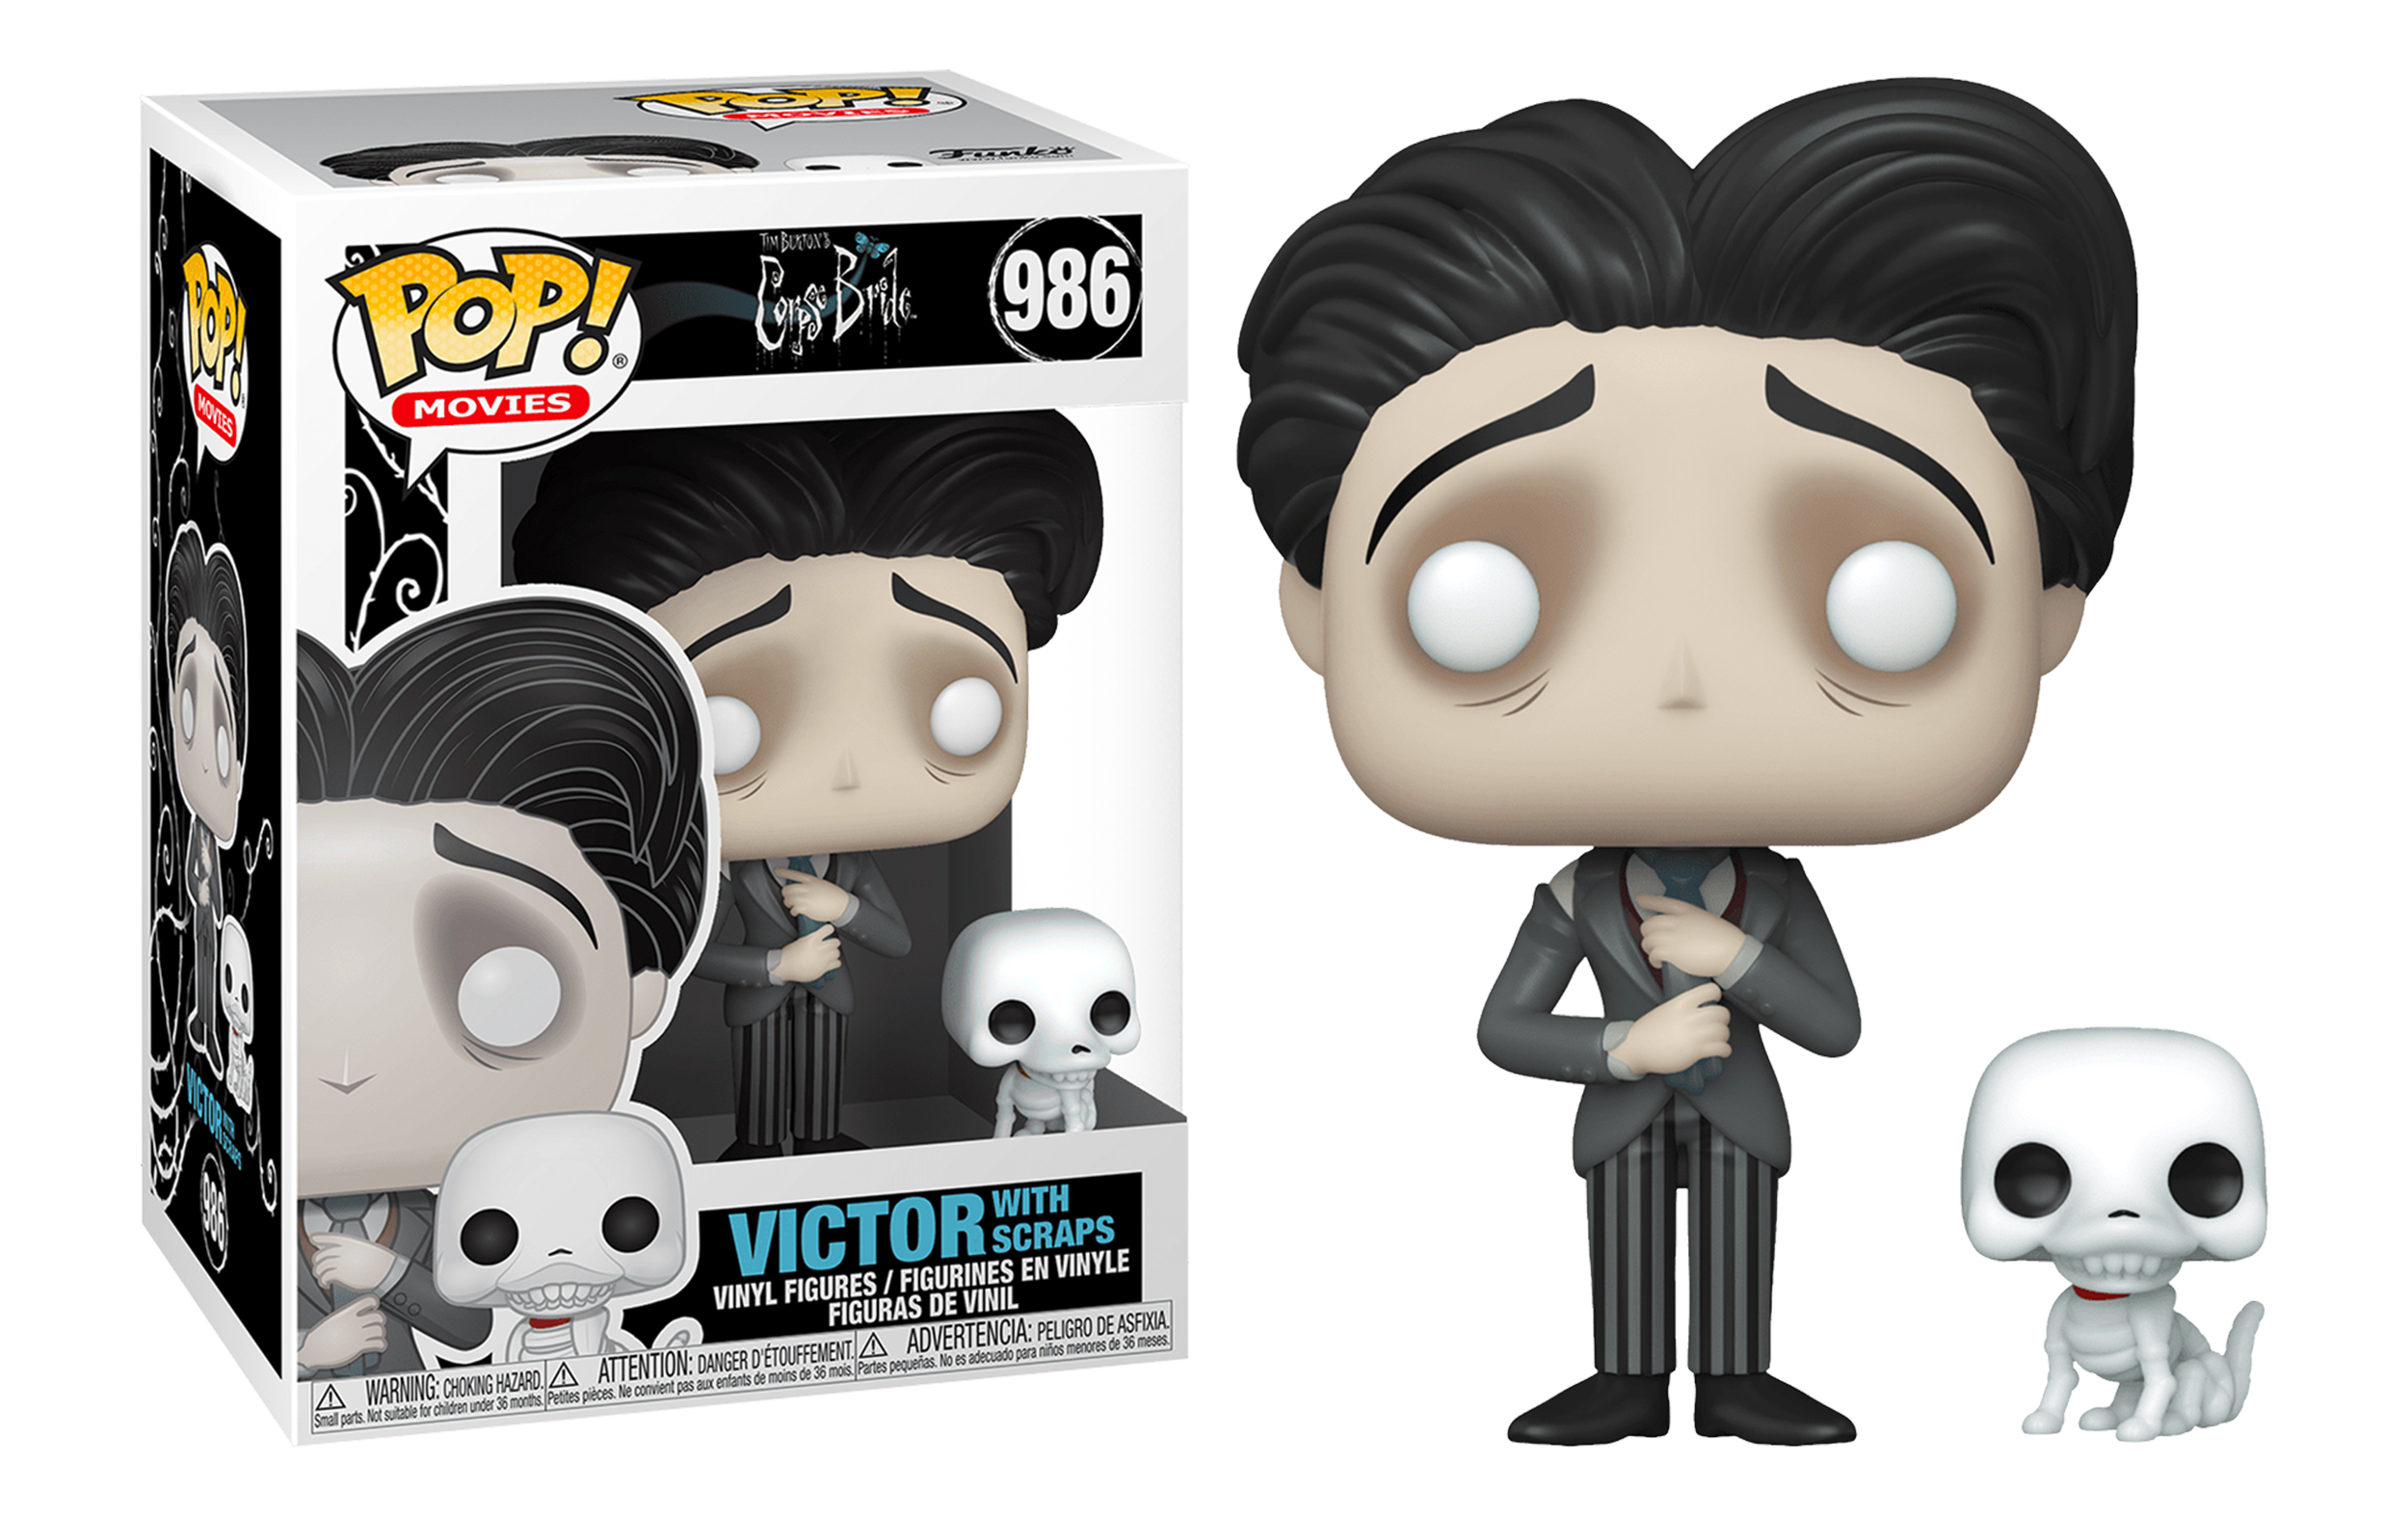 Corpse Bride Victor with Scraps 986 Funko POP Vinyl Figure